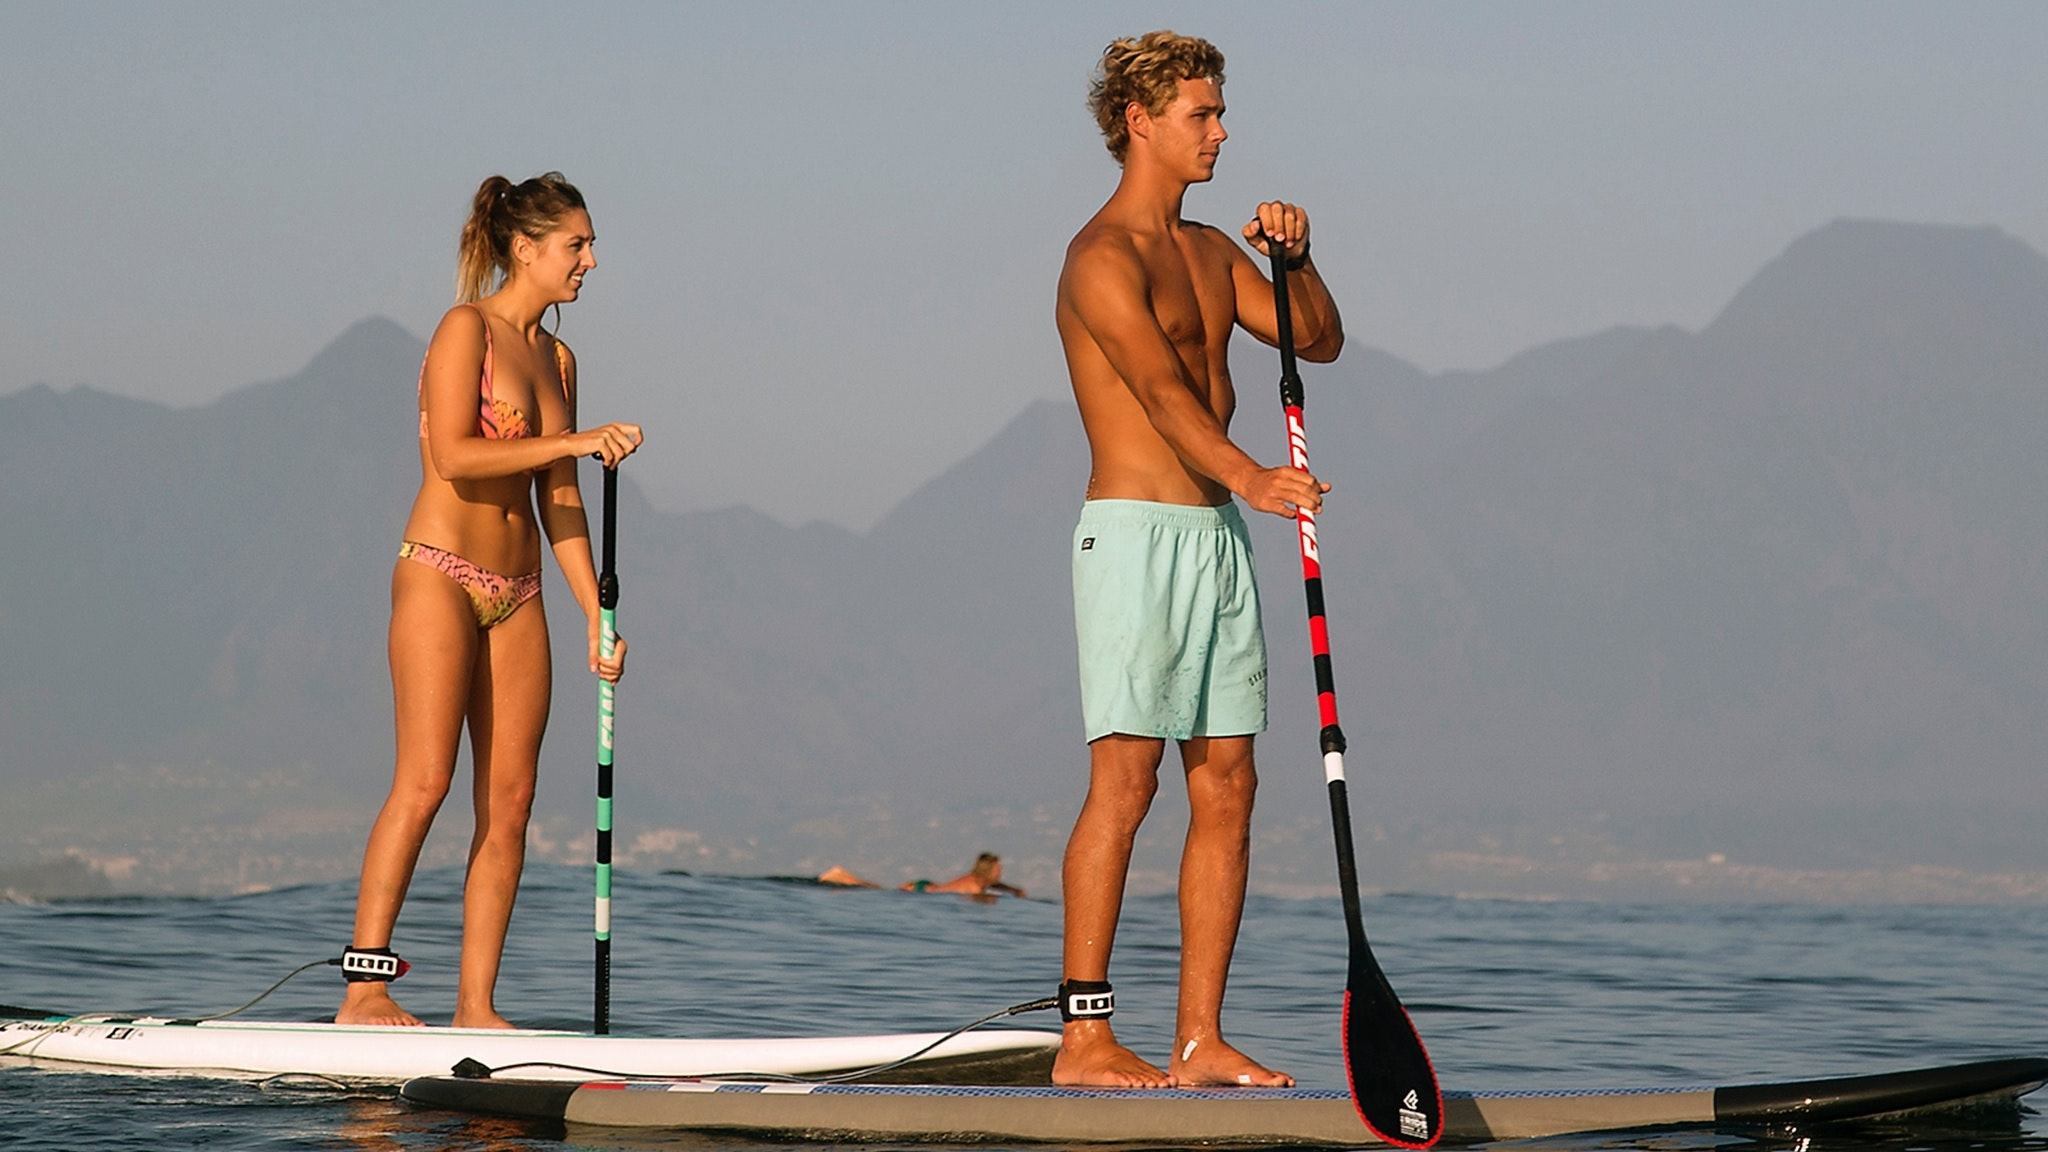 Join the SUP community